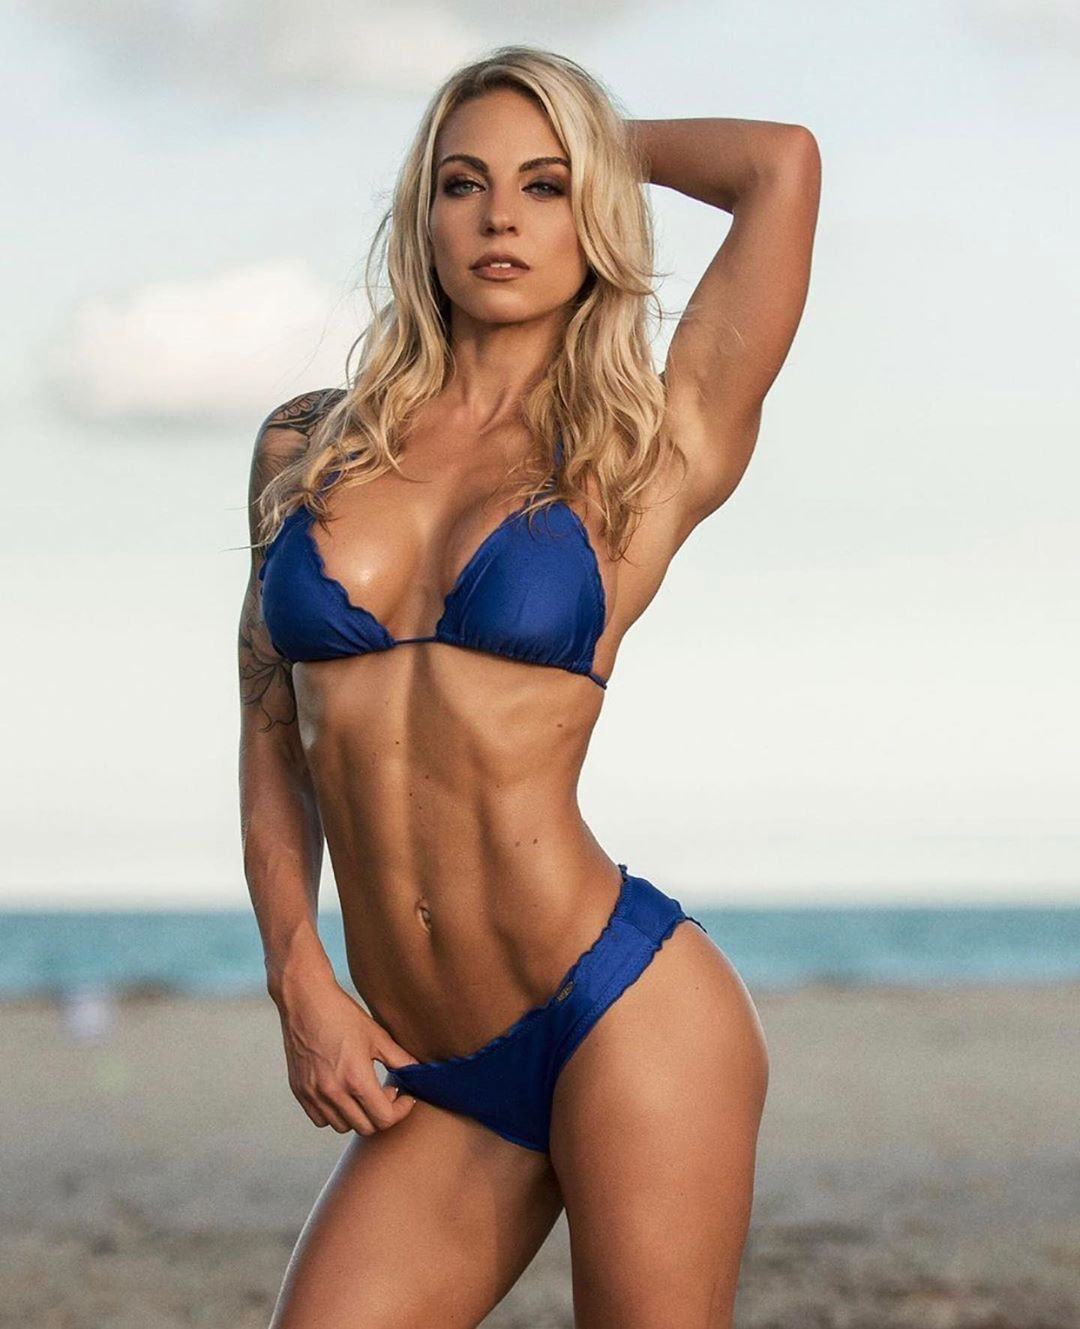 Pin On Fitness Beauties